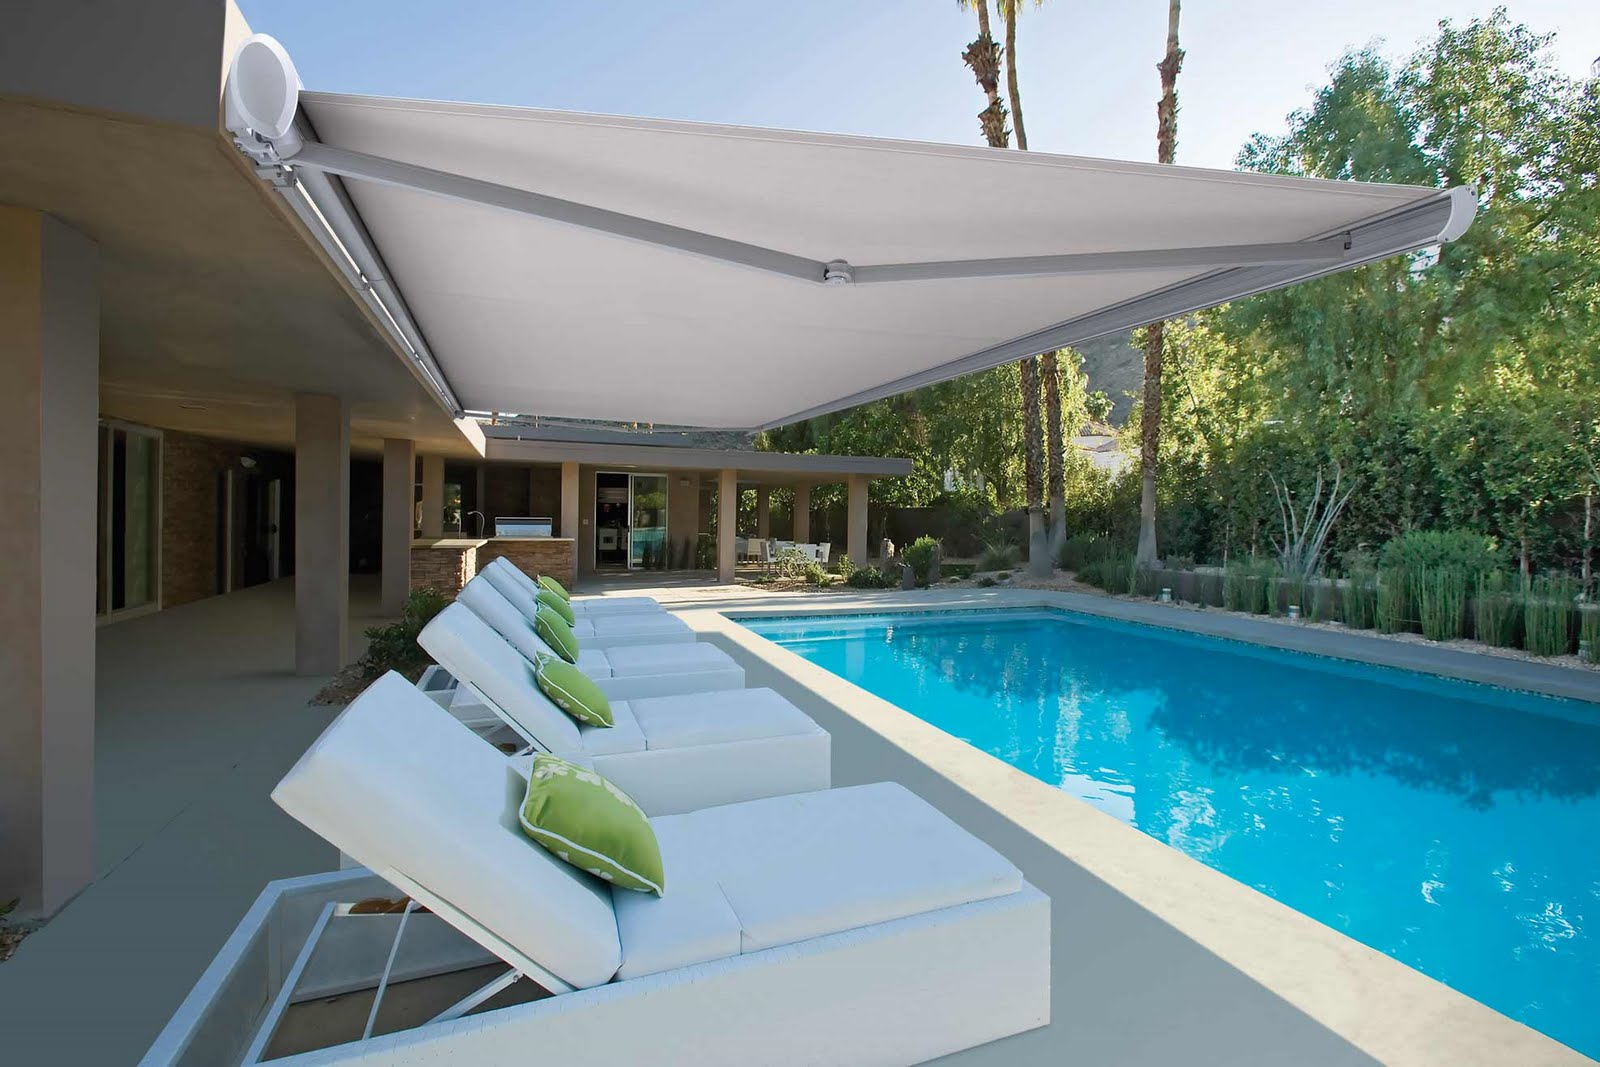 patio inc retractable awnings